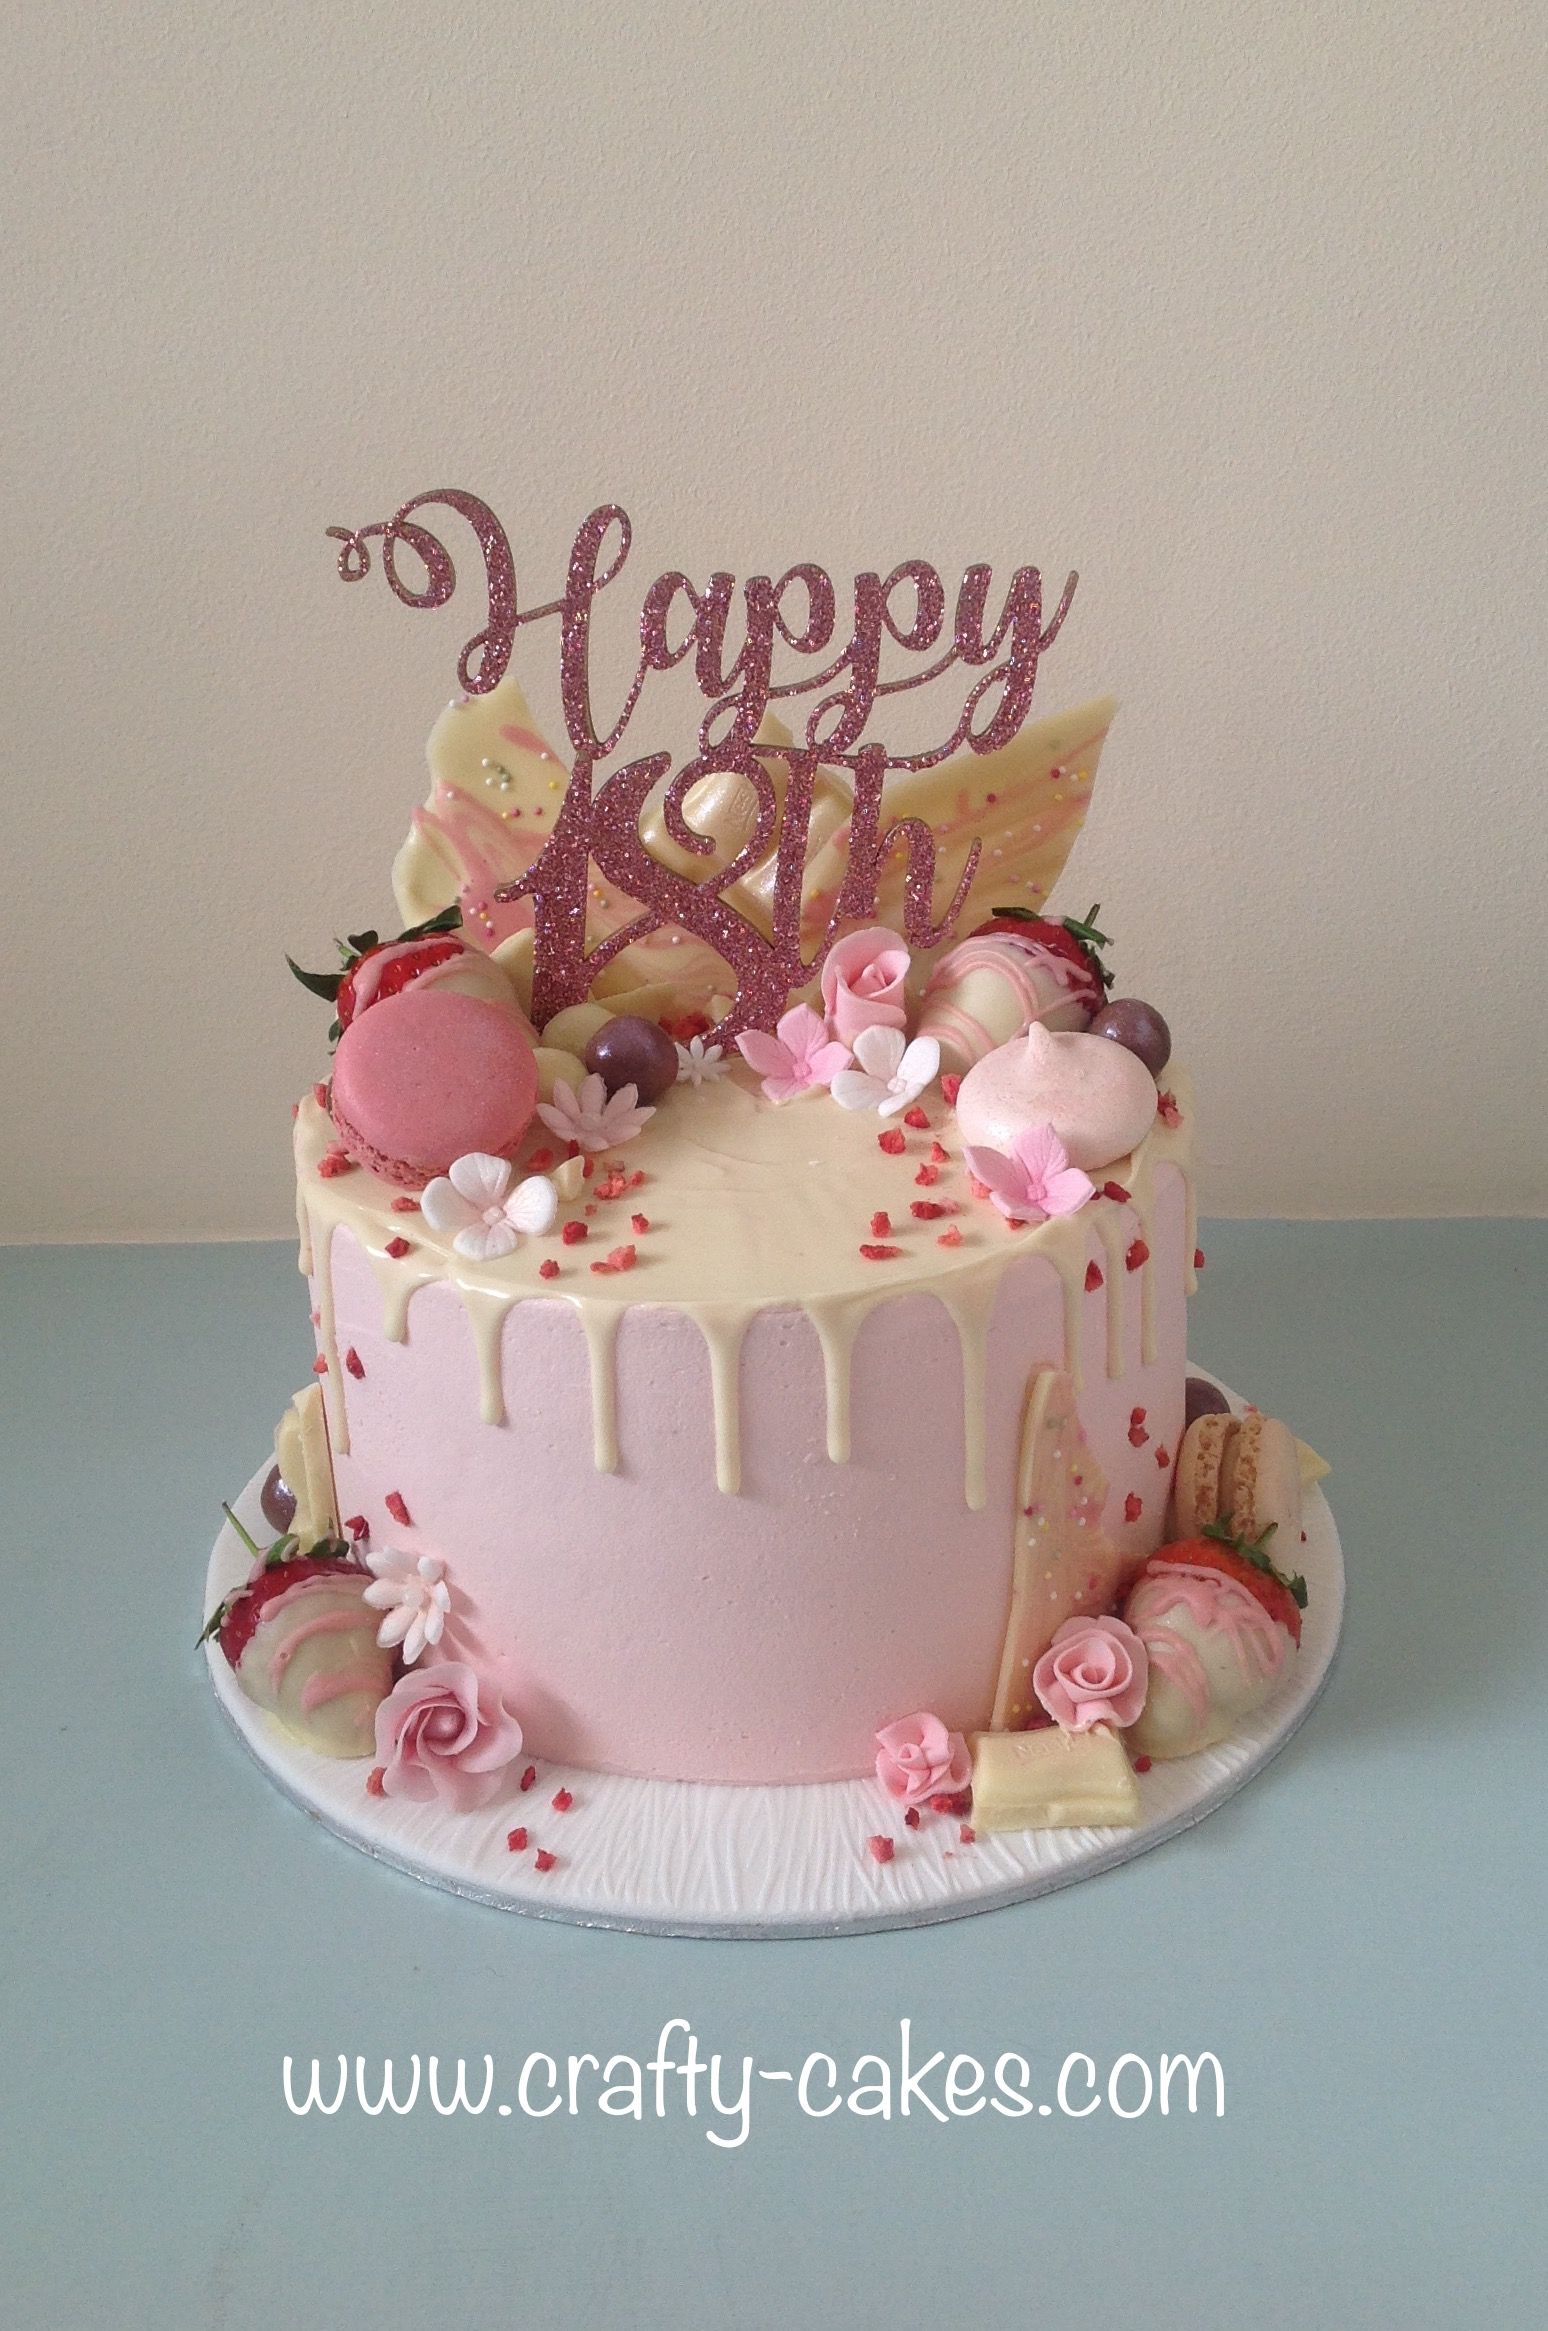 Surprising 18Th Pink Drip Cake Birthday Drip Cake Elegant Birthday Cakes Personalised Birthday Cards Veneteletsinfo